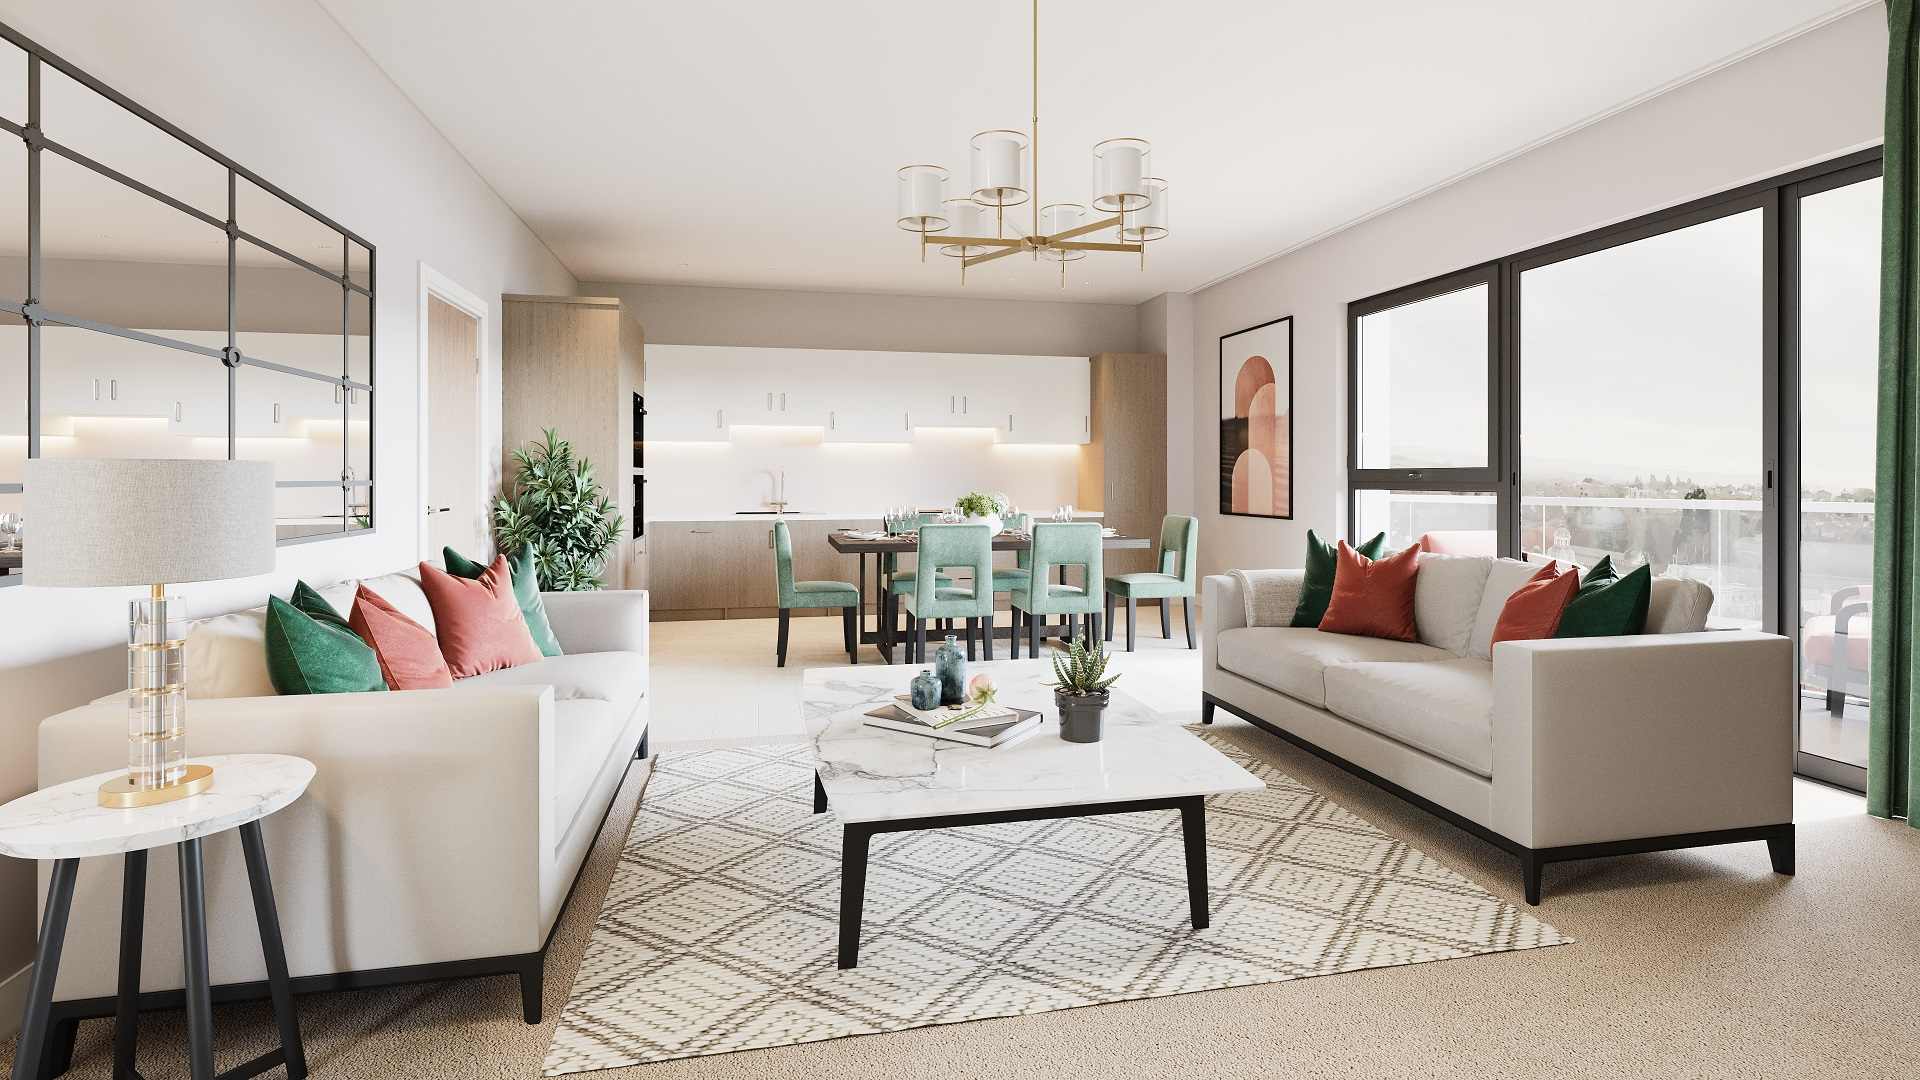 Taunton - An artist's impression of a lounge in an apartment at Quantock House